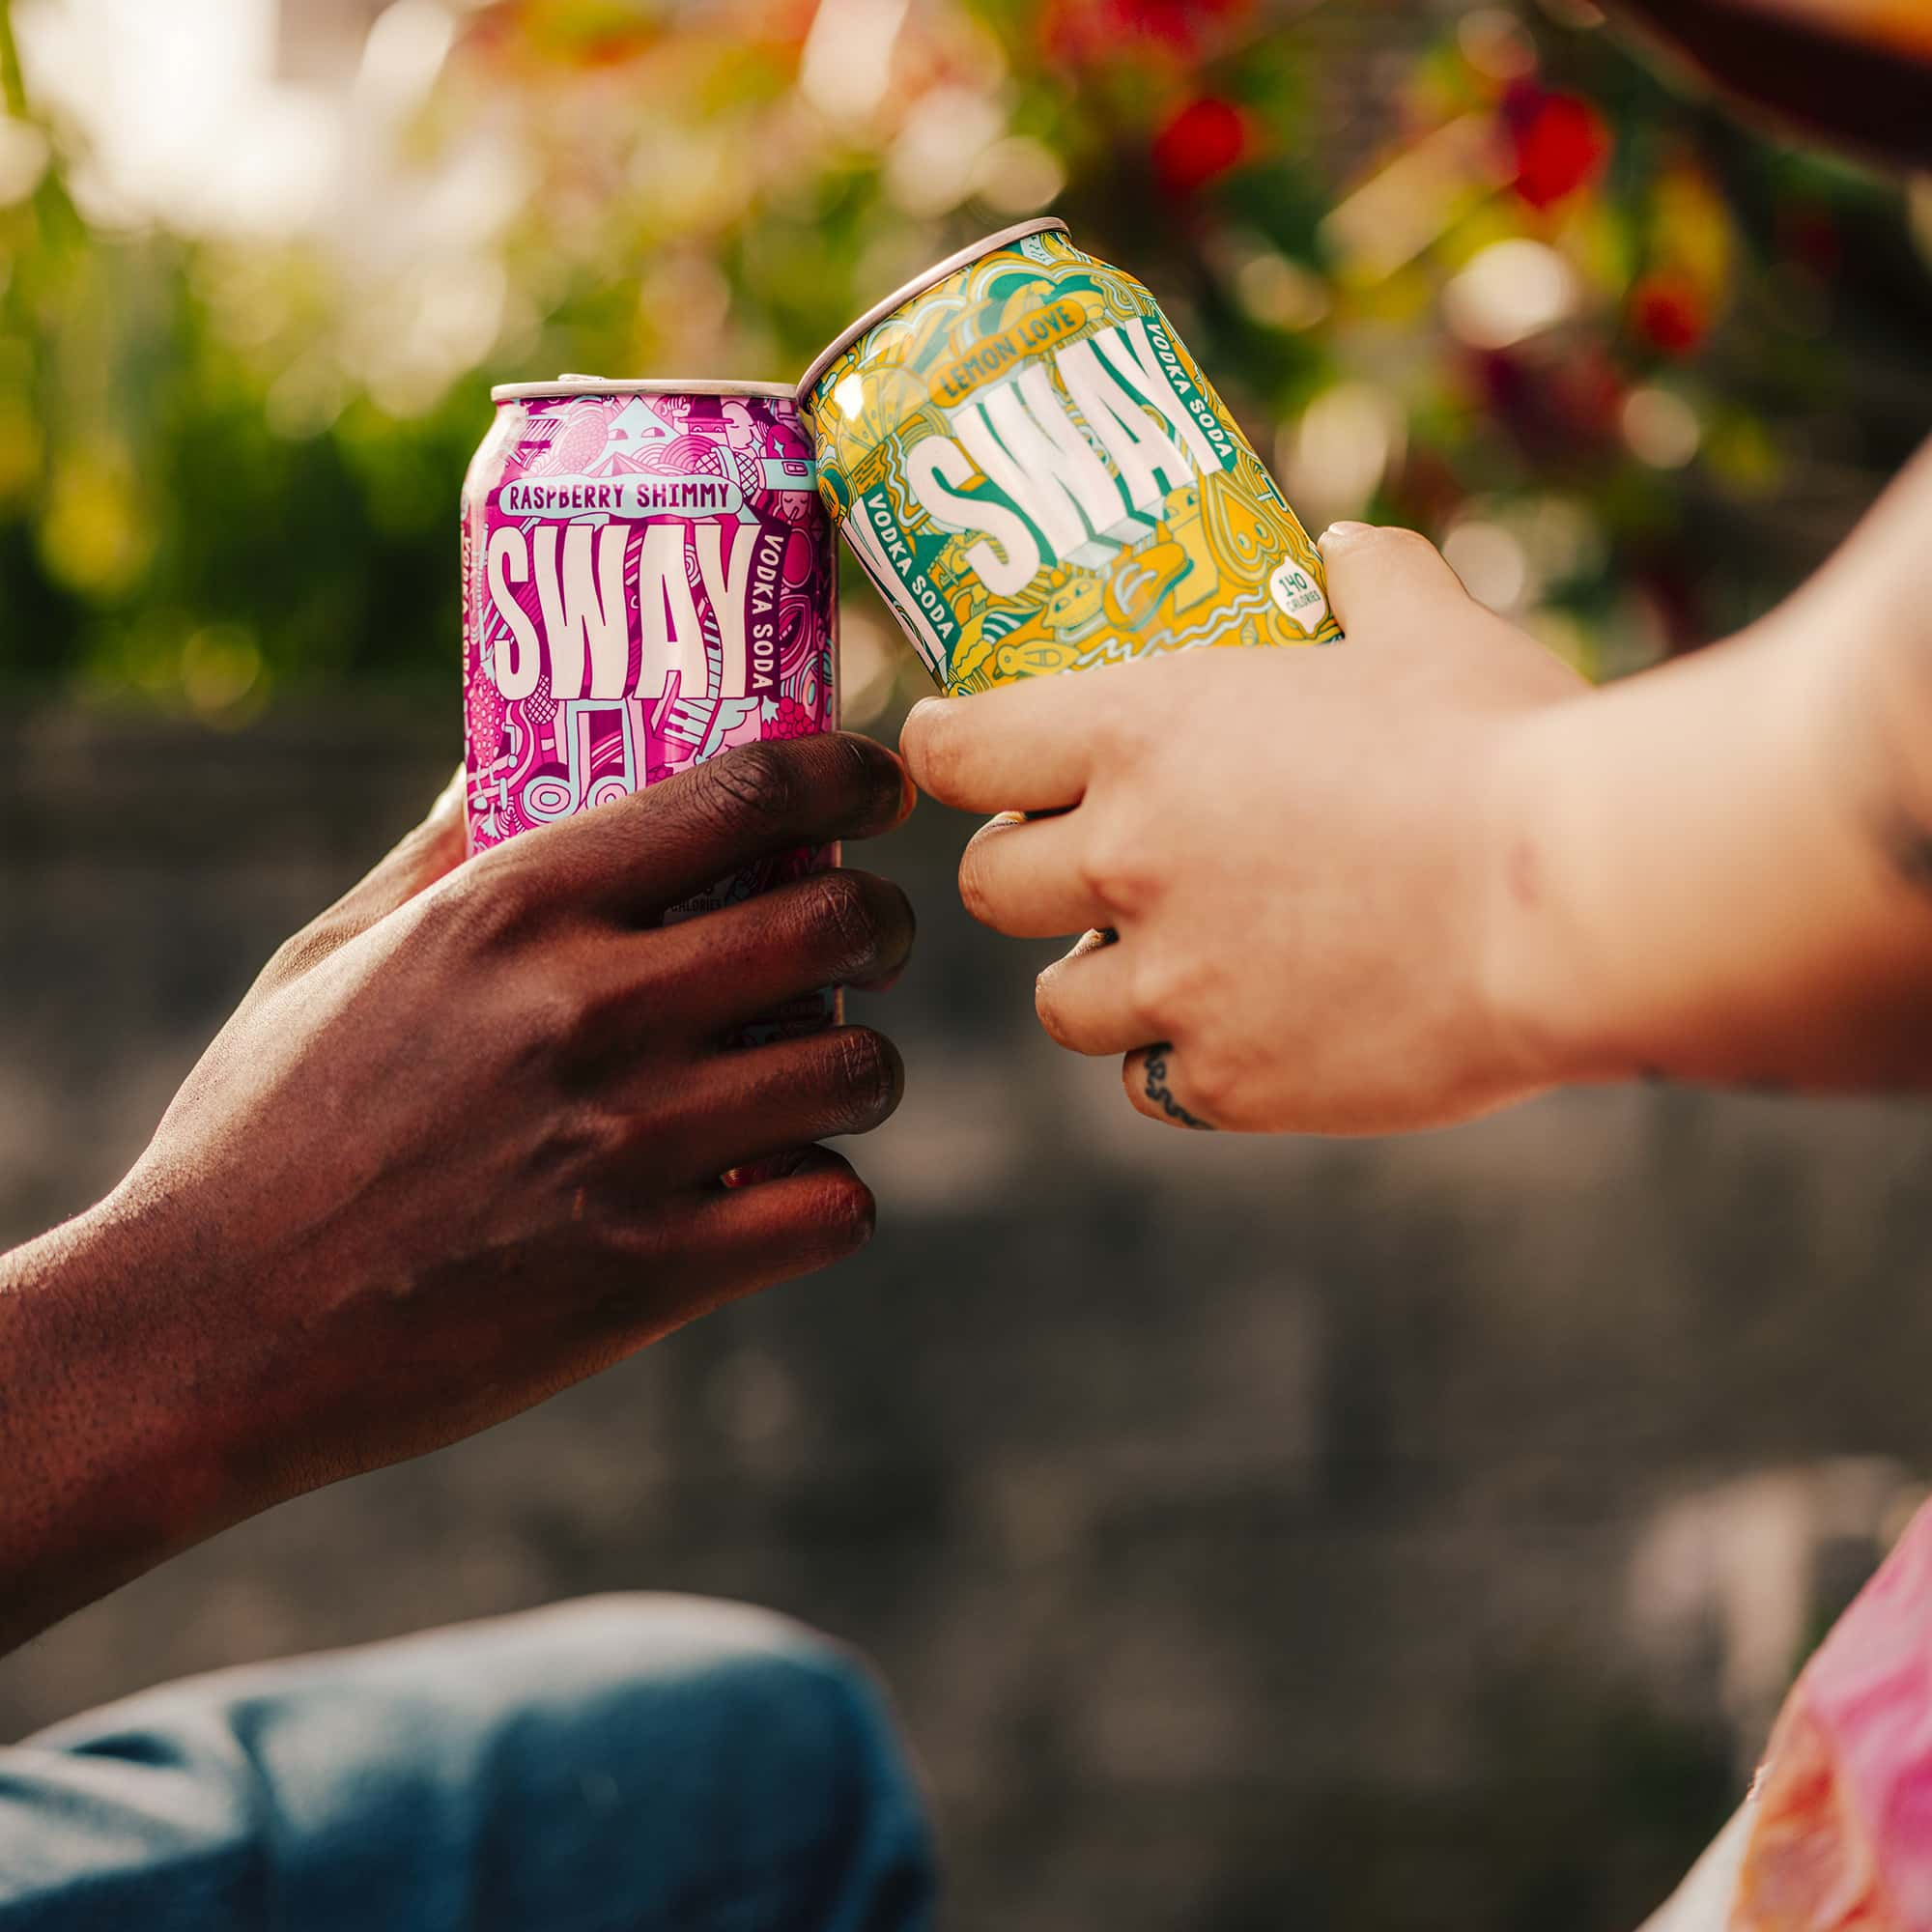 4725 Sway Cans Cheers 20210331 2362